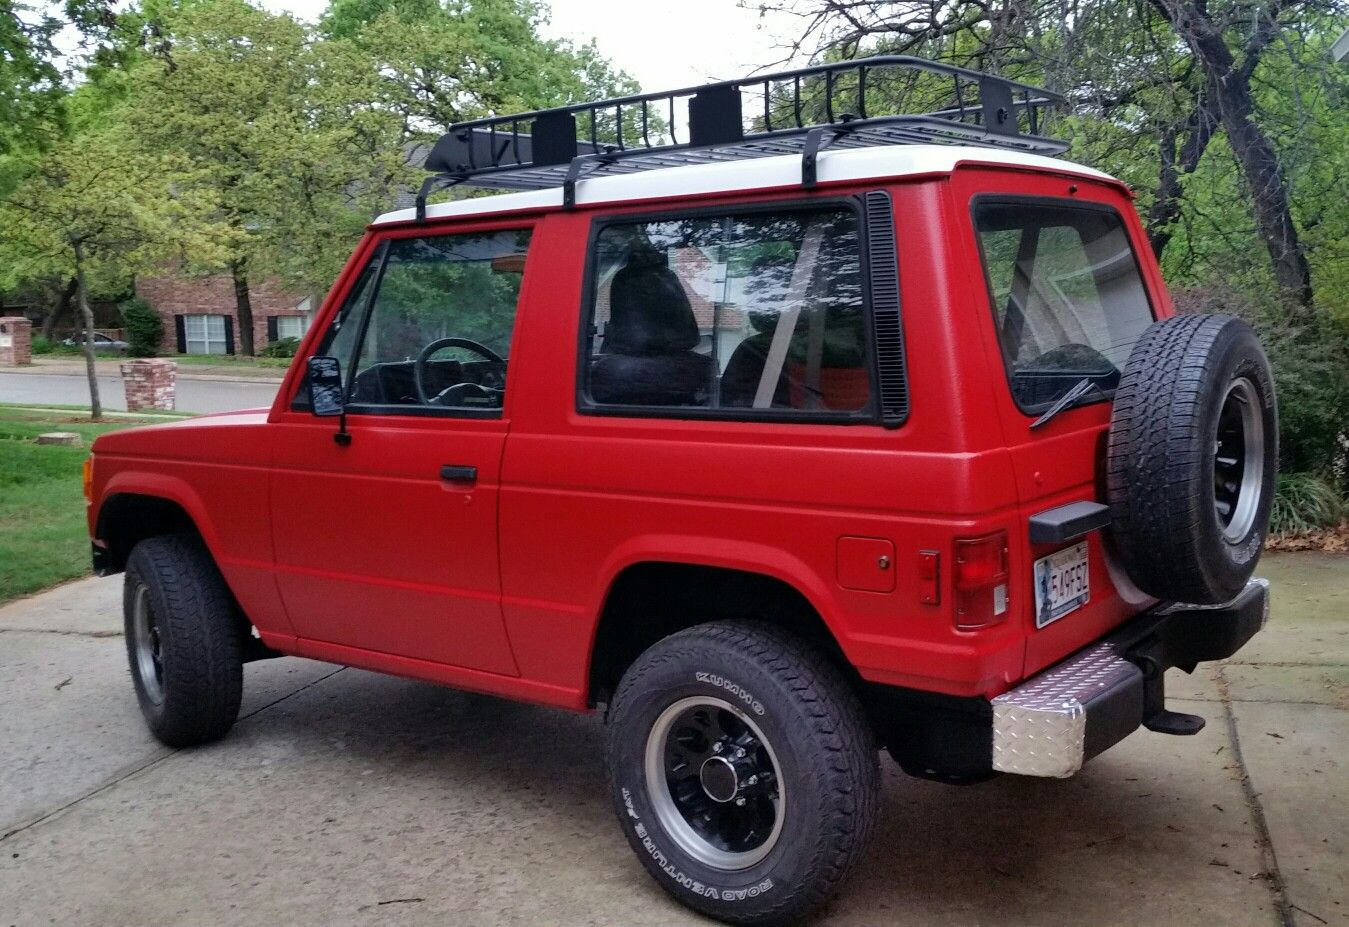 1989 Dodge Raider 4x4 V6 With Monstaliner Body And Custom Bumper Wheels And Roof Rack Roof Rack Raiders Jdm